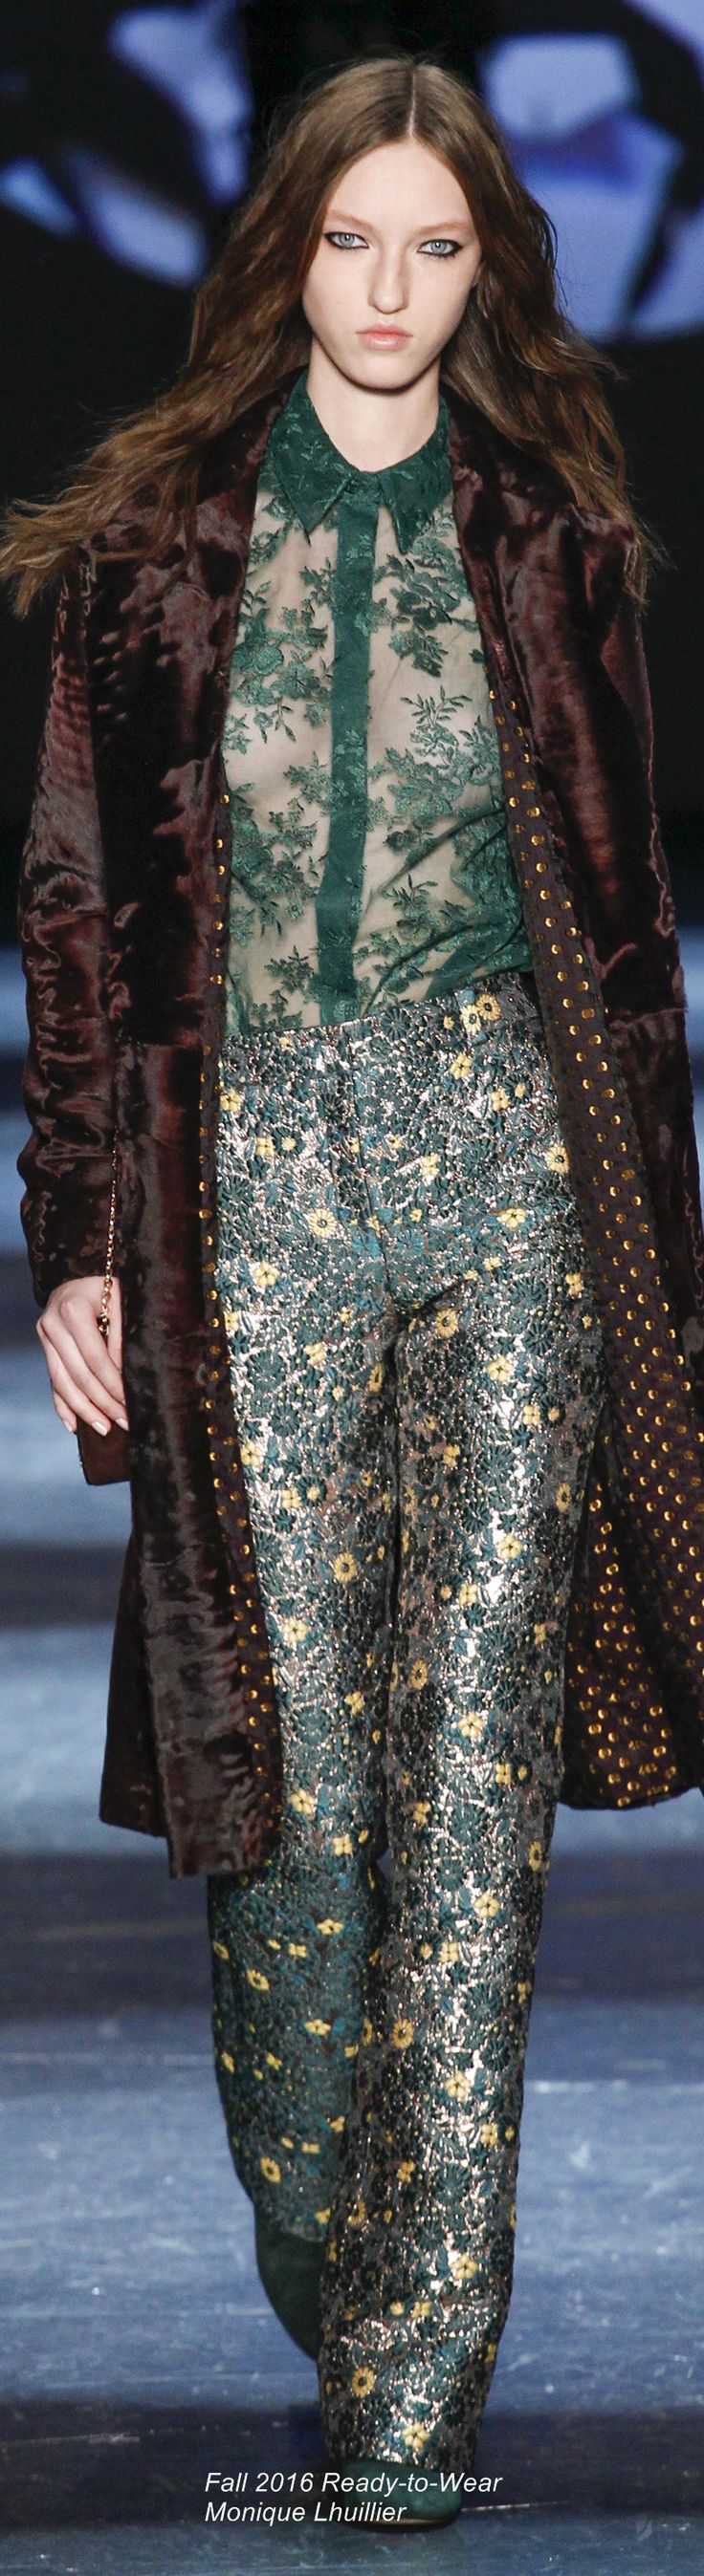 Fall 2016 Ready-to-Wear Monique Lhuillier